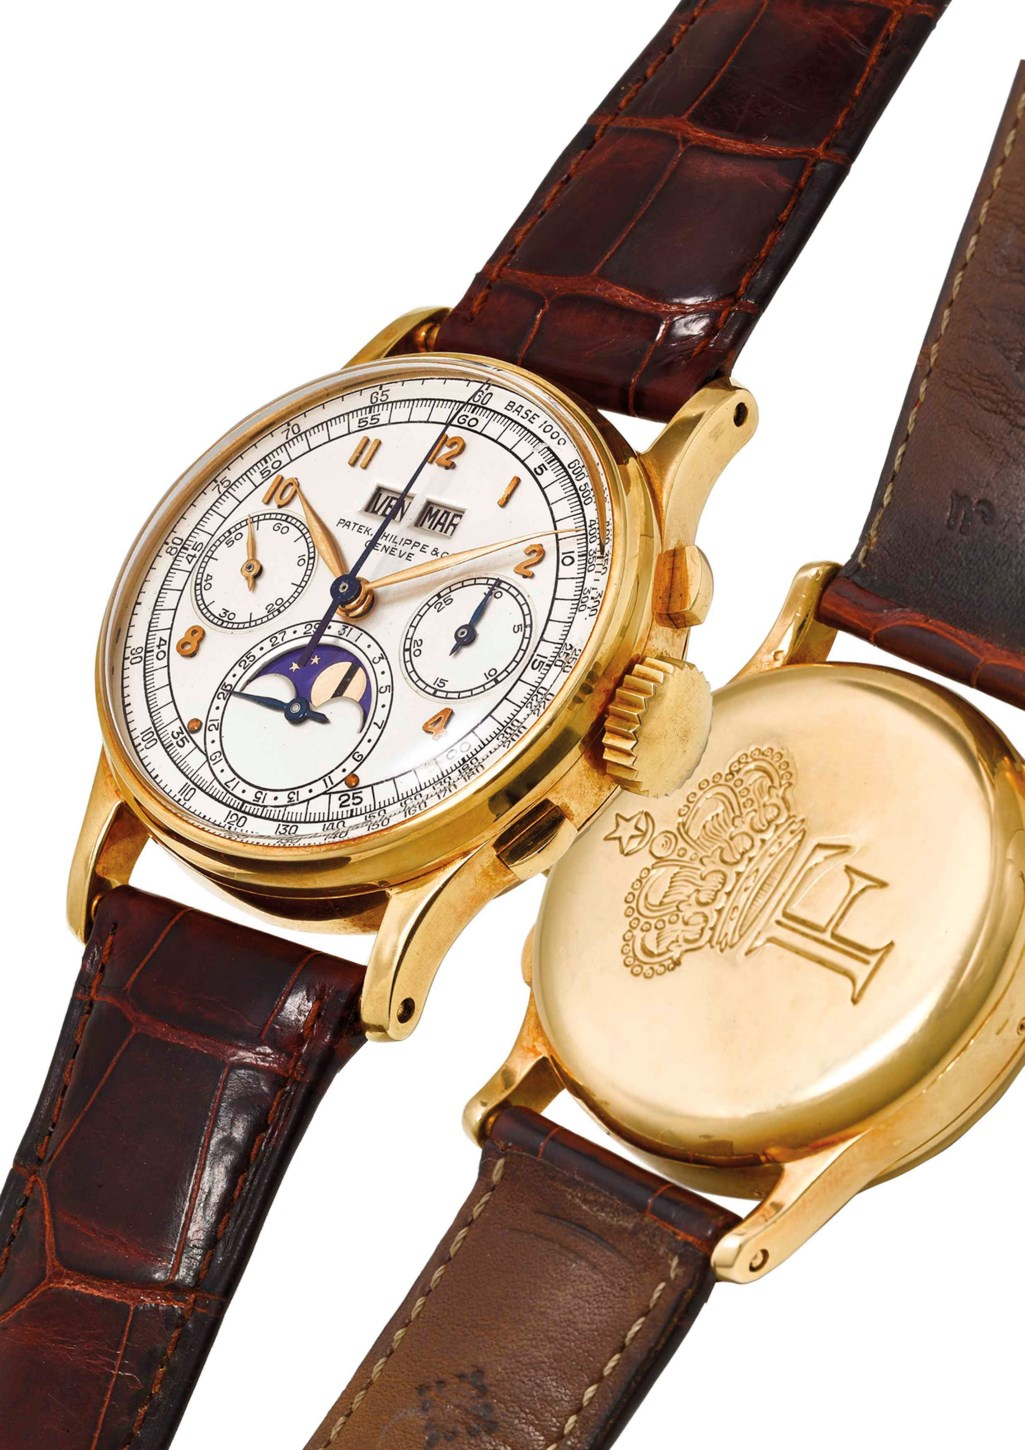 PATEK PHILIPPE. AN EXTREMELY FINE, RARE AND HISTORICALLY IMPORTANT 18K GOLD PERPETUAL CHRONOGRAPH WRISTWATCH WITH MOON PHASES